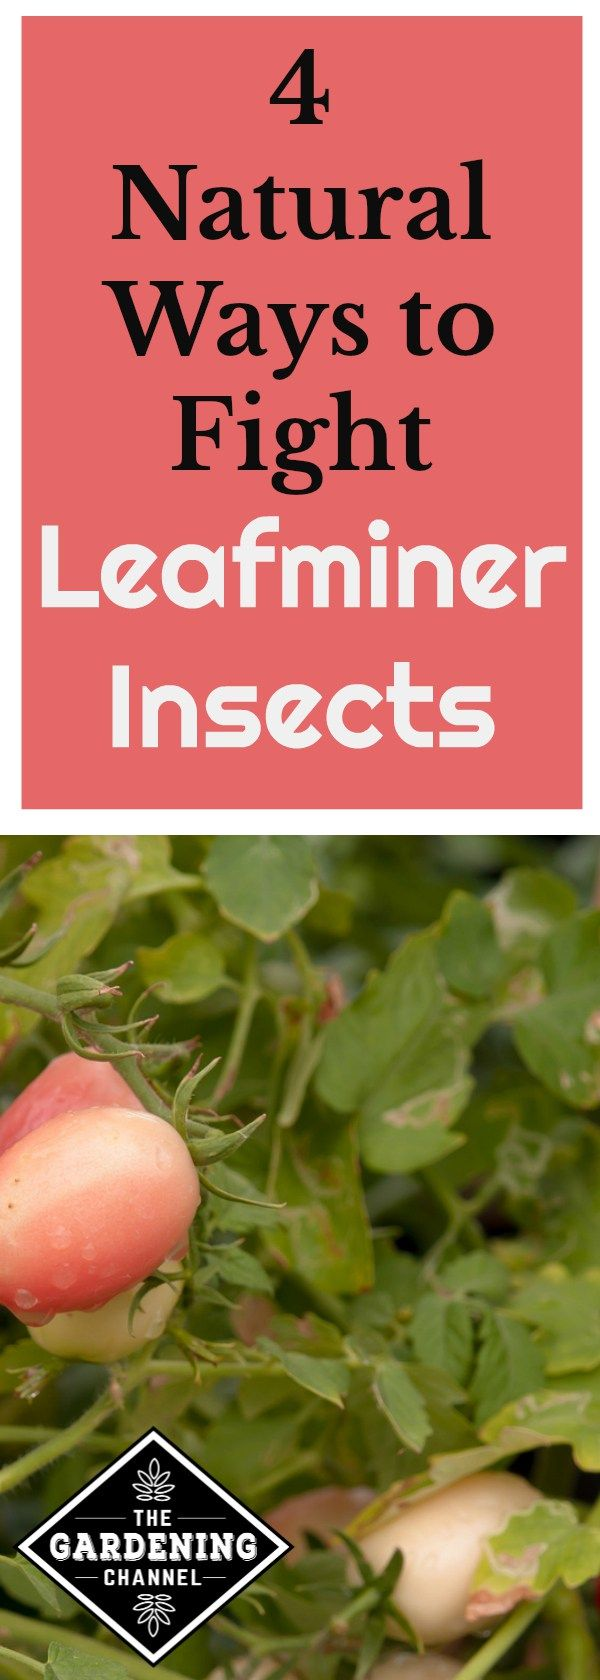 How To Fight Leafminer Insects Garden pests, Garden